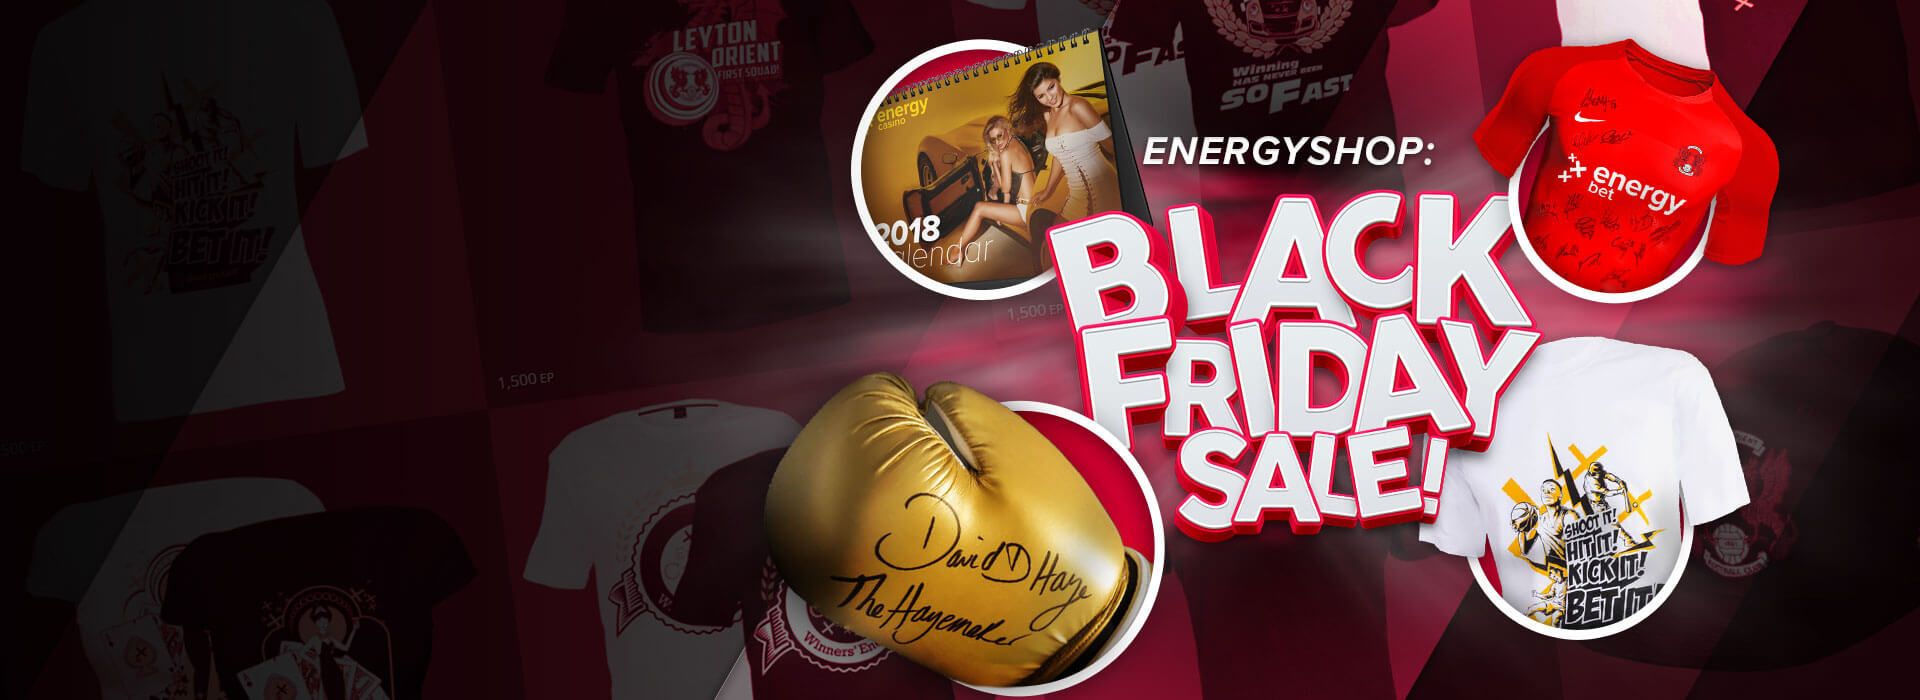 Black Friday: Up to 50% Off at the EnergyShop